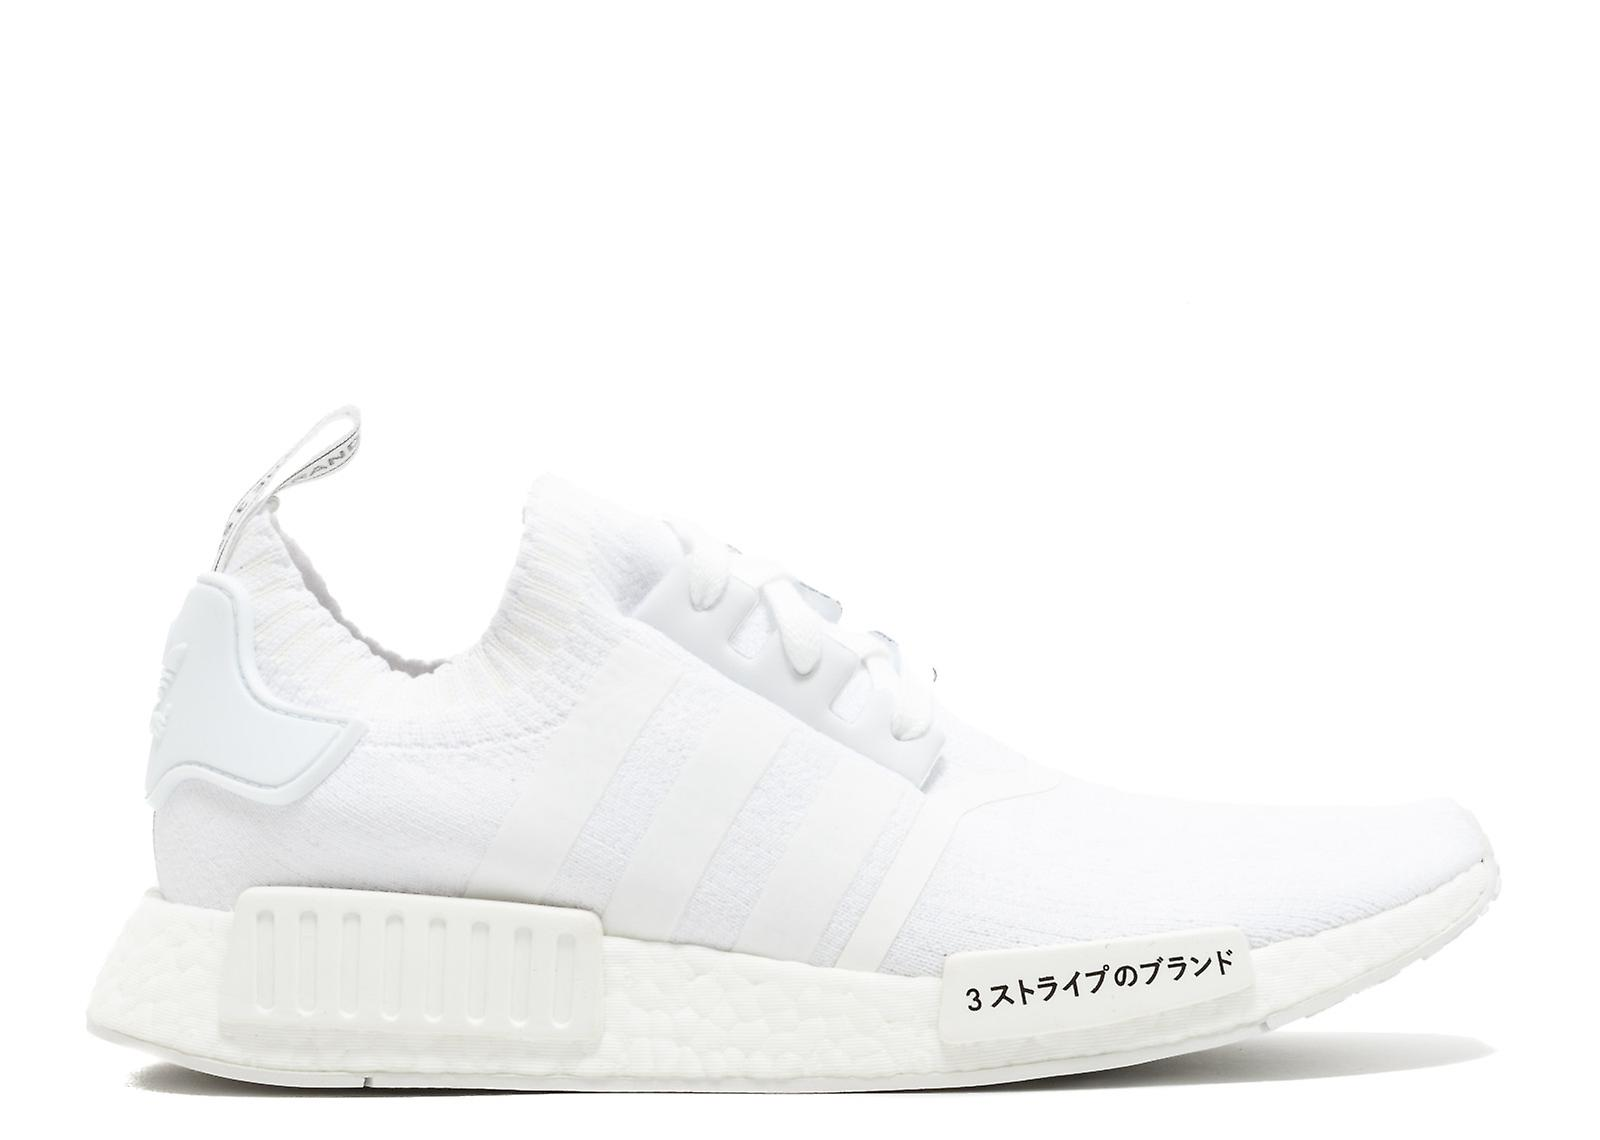 nmd japan boost white